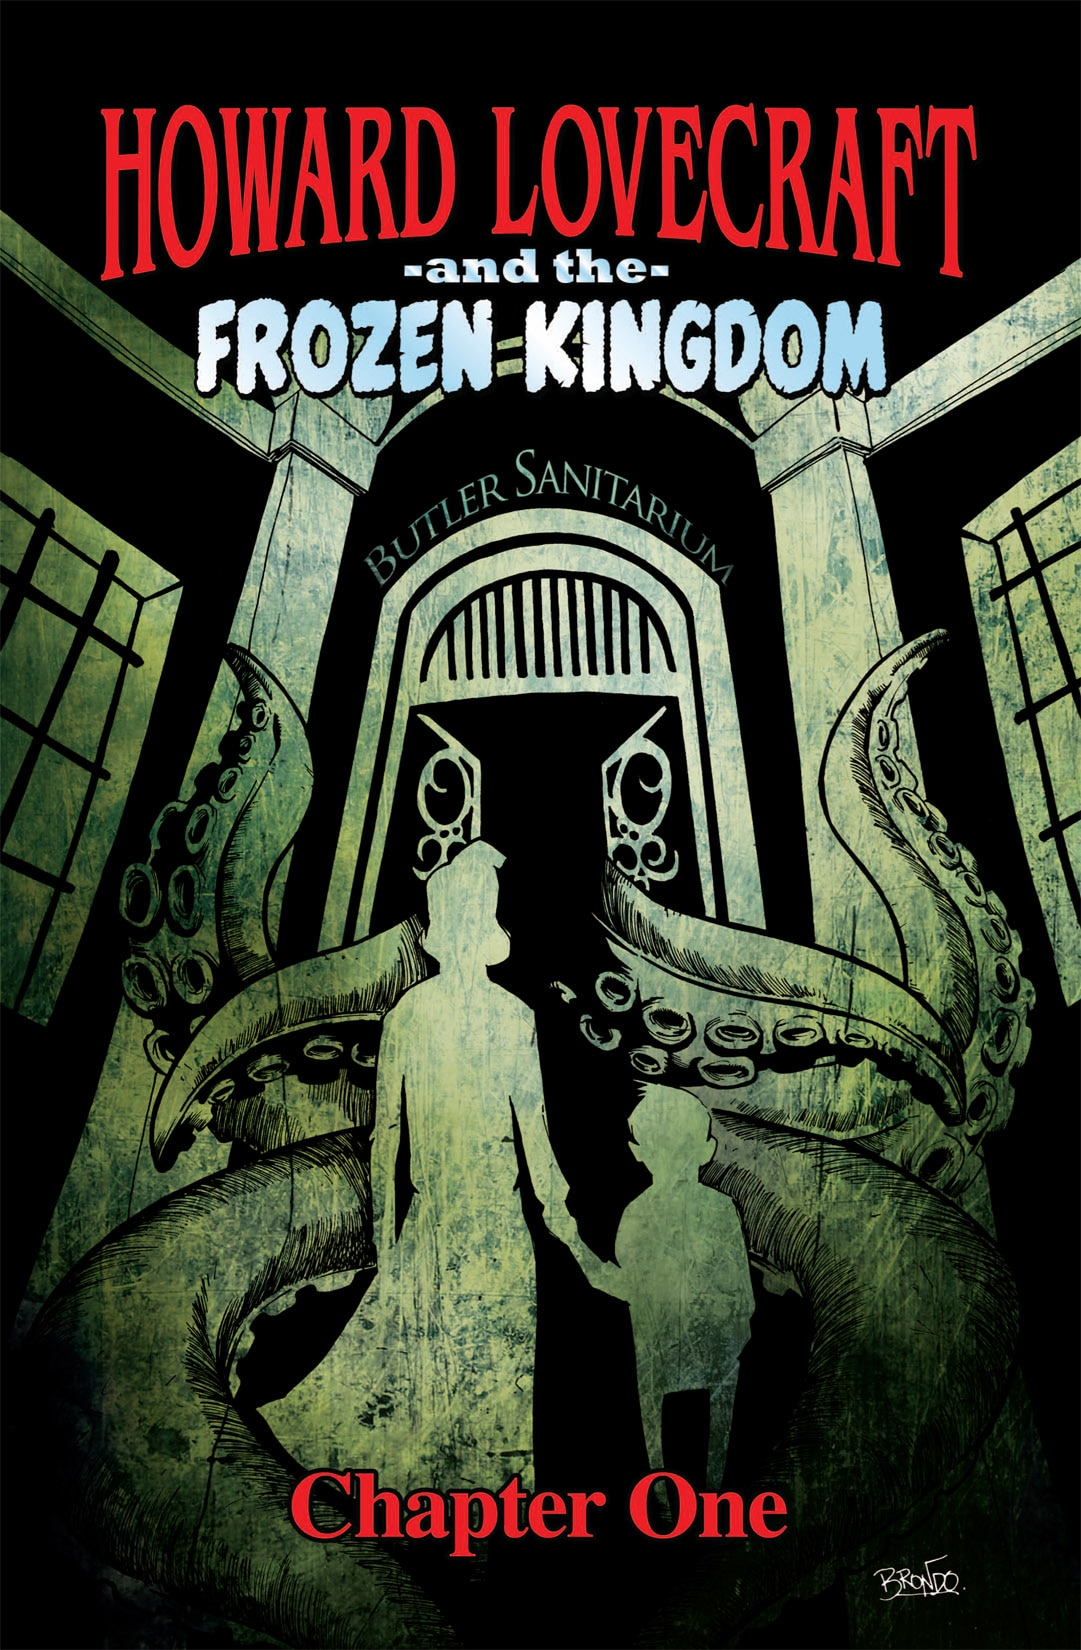 howard lovecraft - Howard Lovecraft and the Frozen Kingdom Finds its Voices!